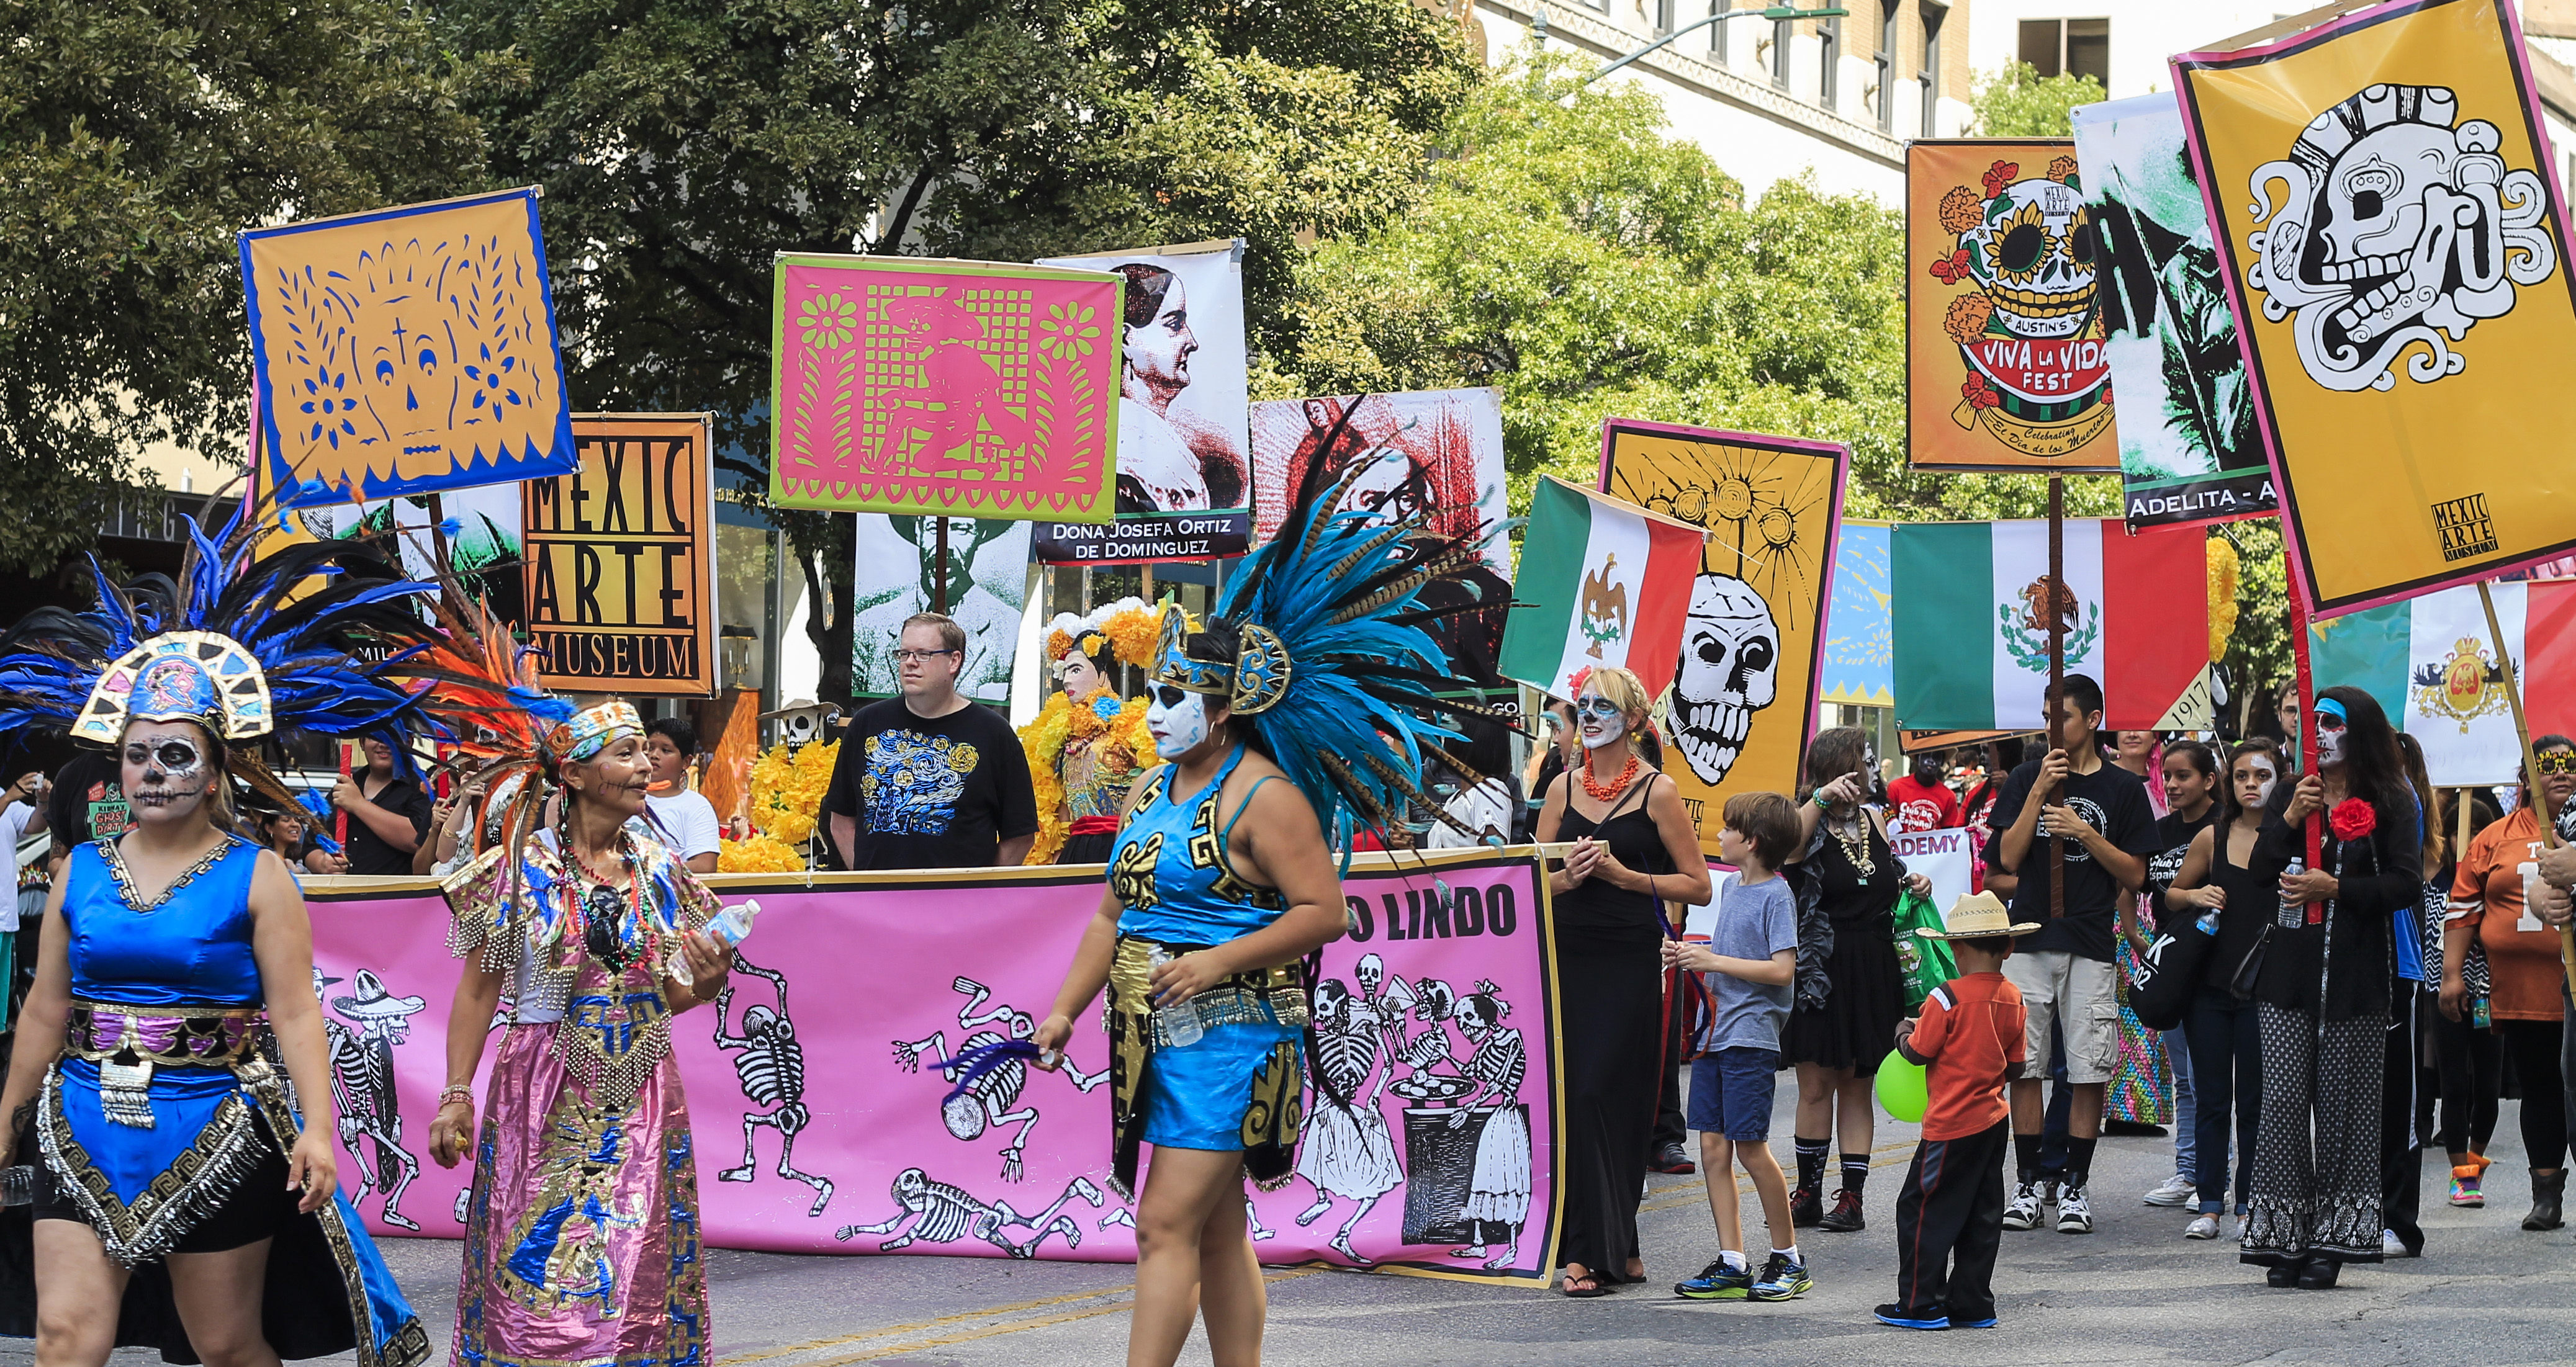 Dancers and attendees march through downtown Austin during the Mexic-Arte Musem's Viva la Vida parade on October 18th. The festival was one of many Dia de los Muertos celebrations around the city. Photo by Alex Vickery. Editing by Olivia Starich.